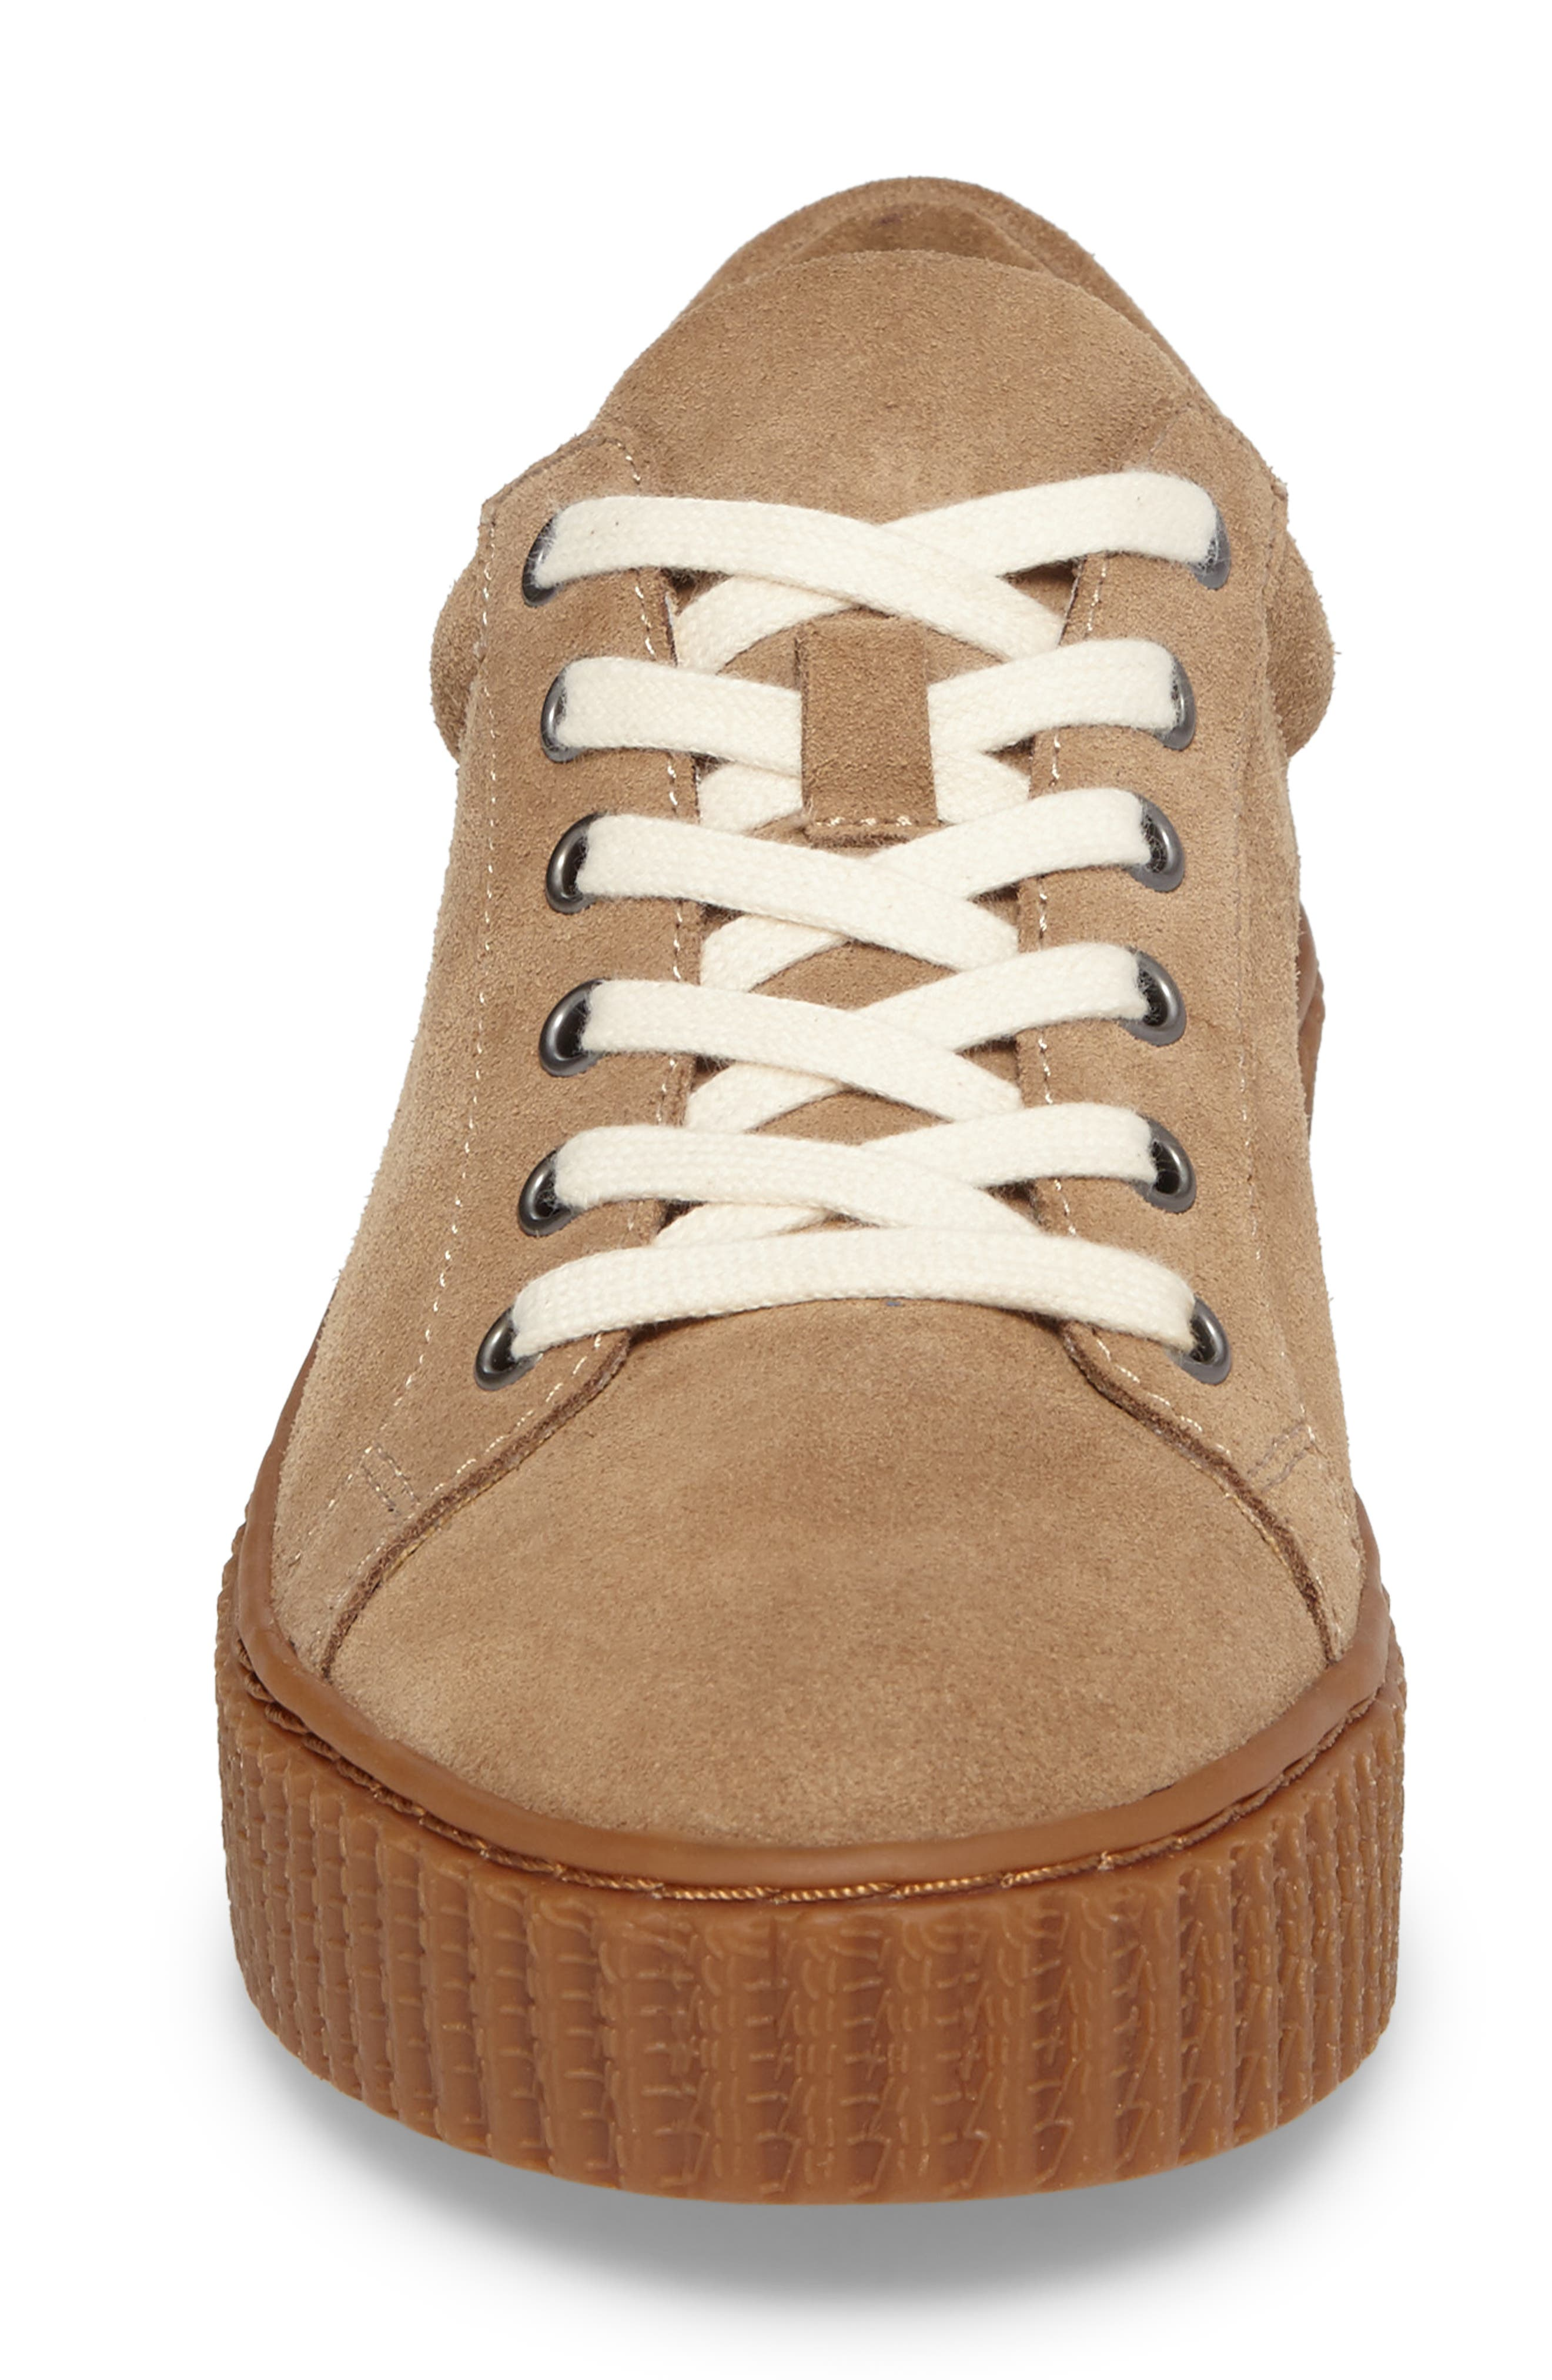 Ruth Platform Sneaker,                             Alternate thumbnail 4, color,                             Light Taupe Suede